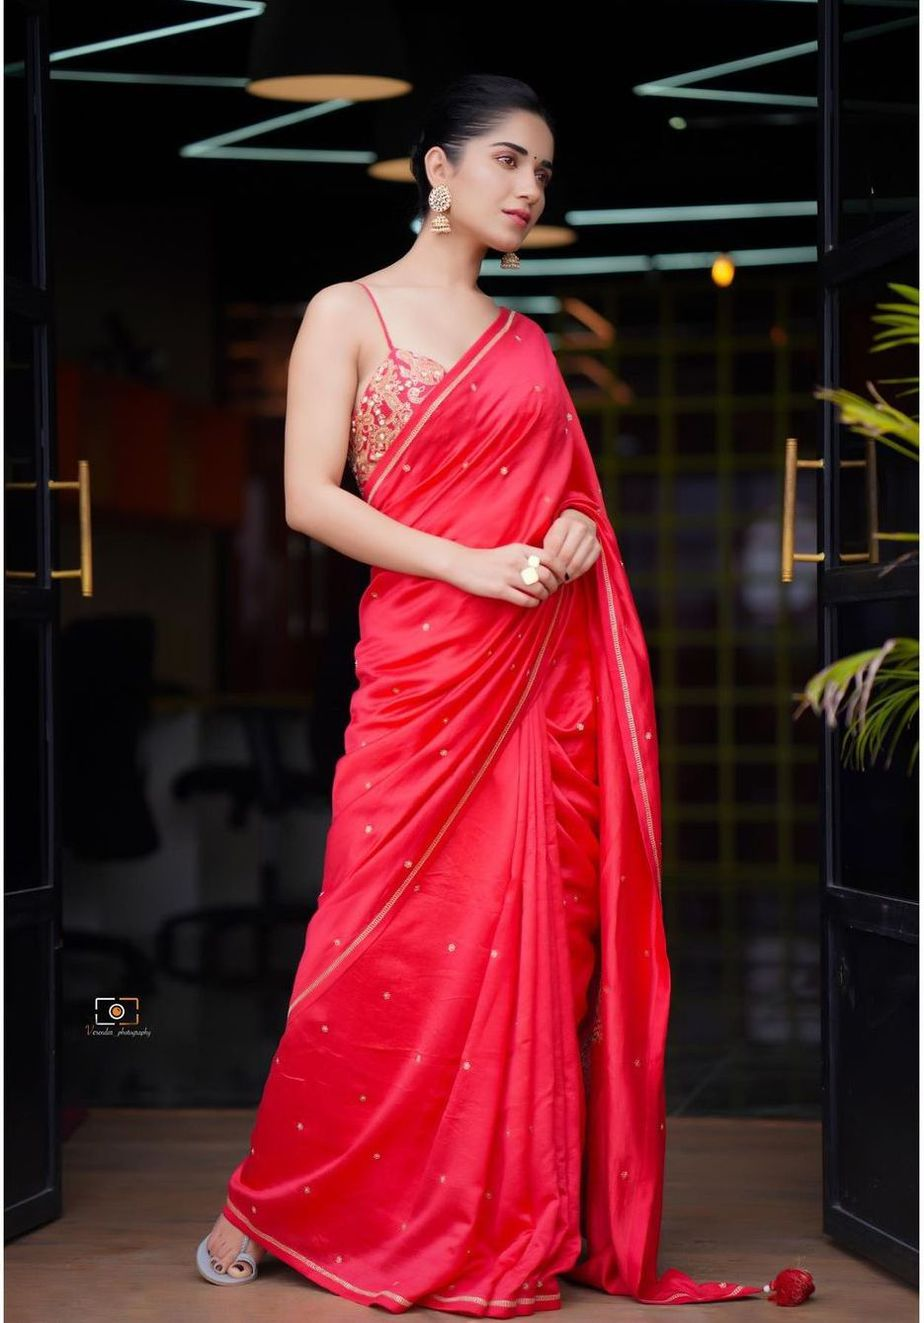 Ruhani Sharma in a red saree by Deepthee